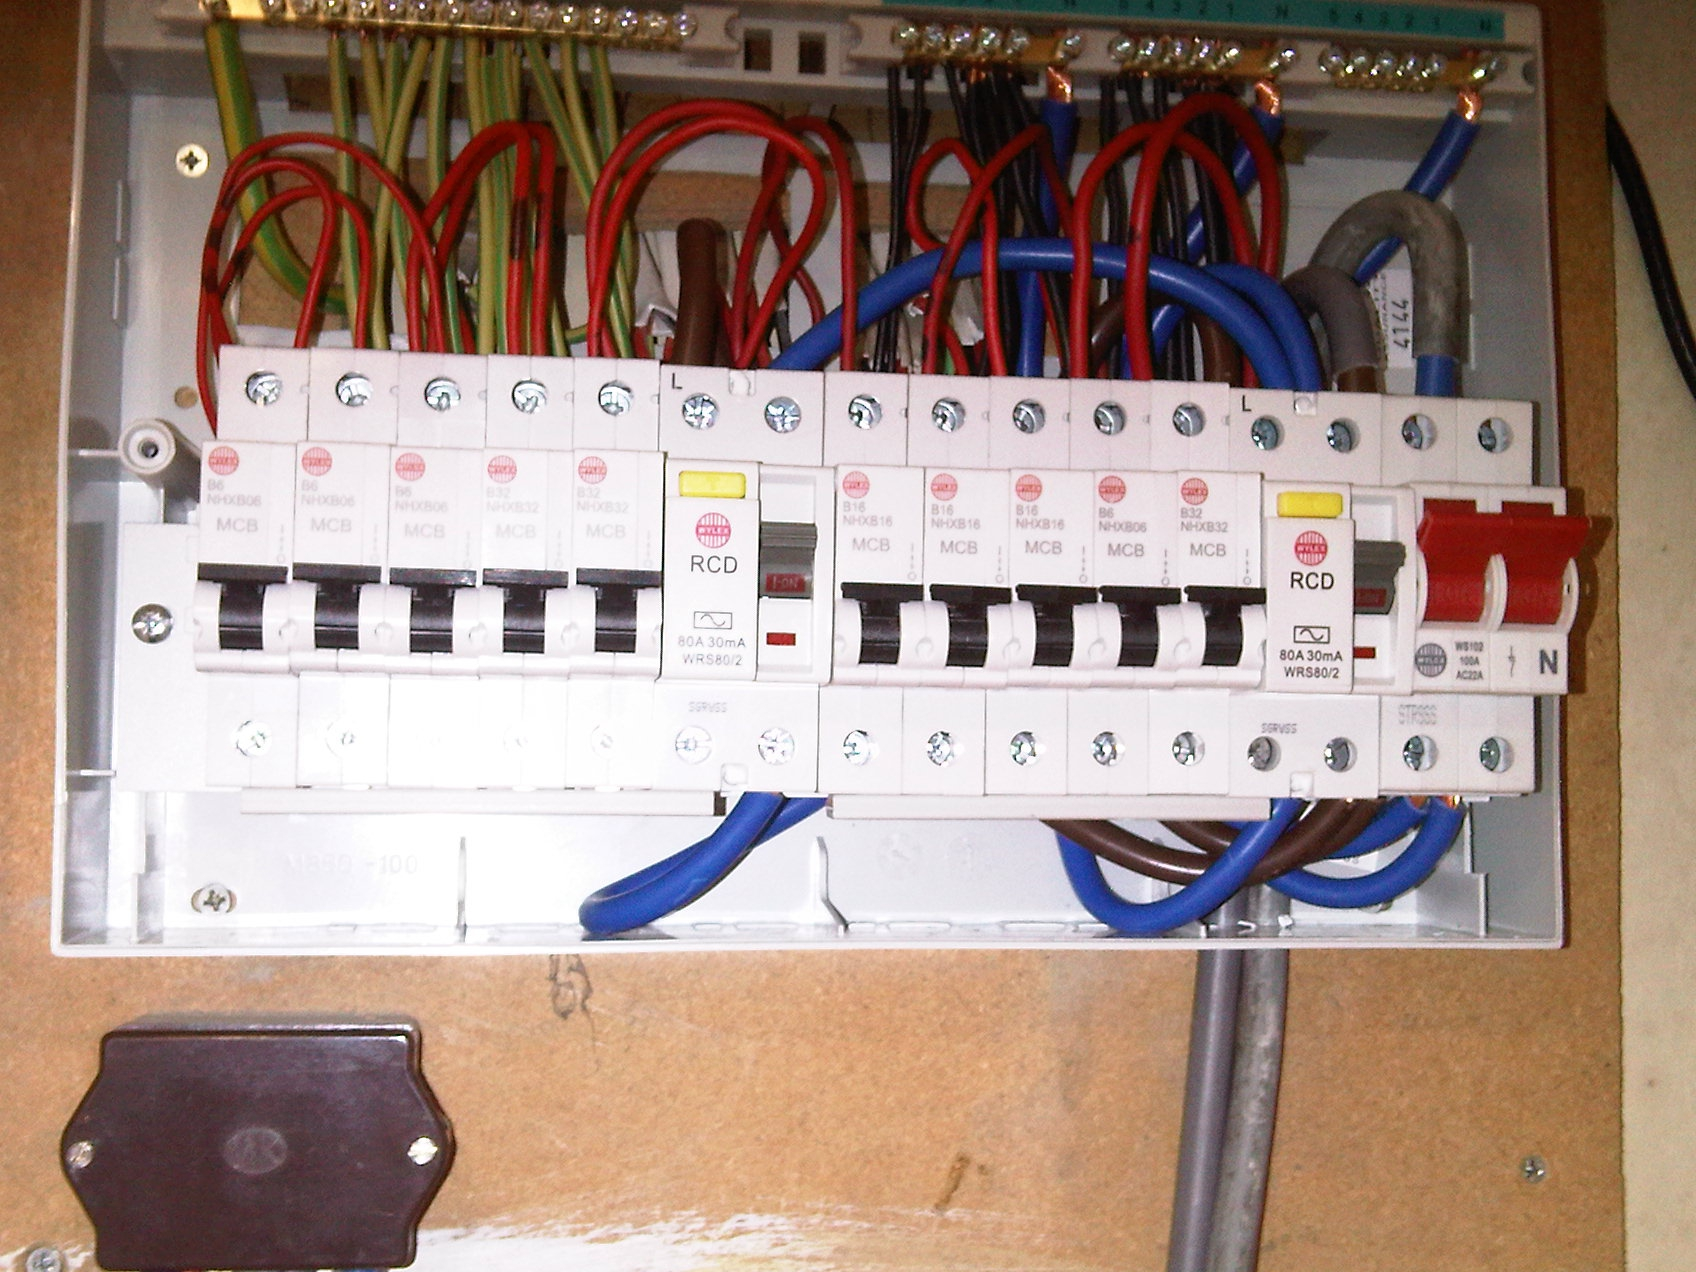 Fusebox 4 mk repair centre notices & news fuse box repair at creativeand.co